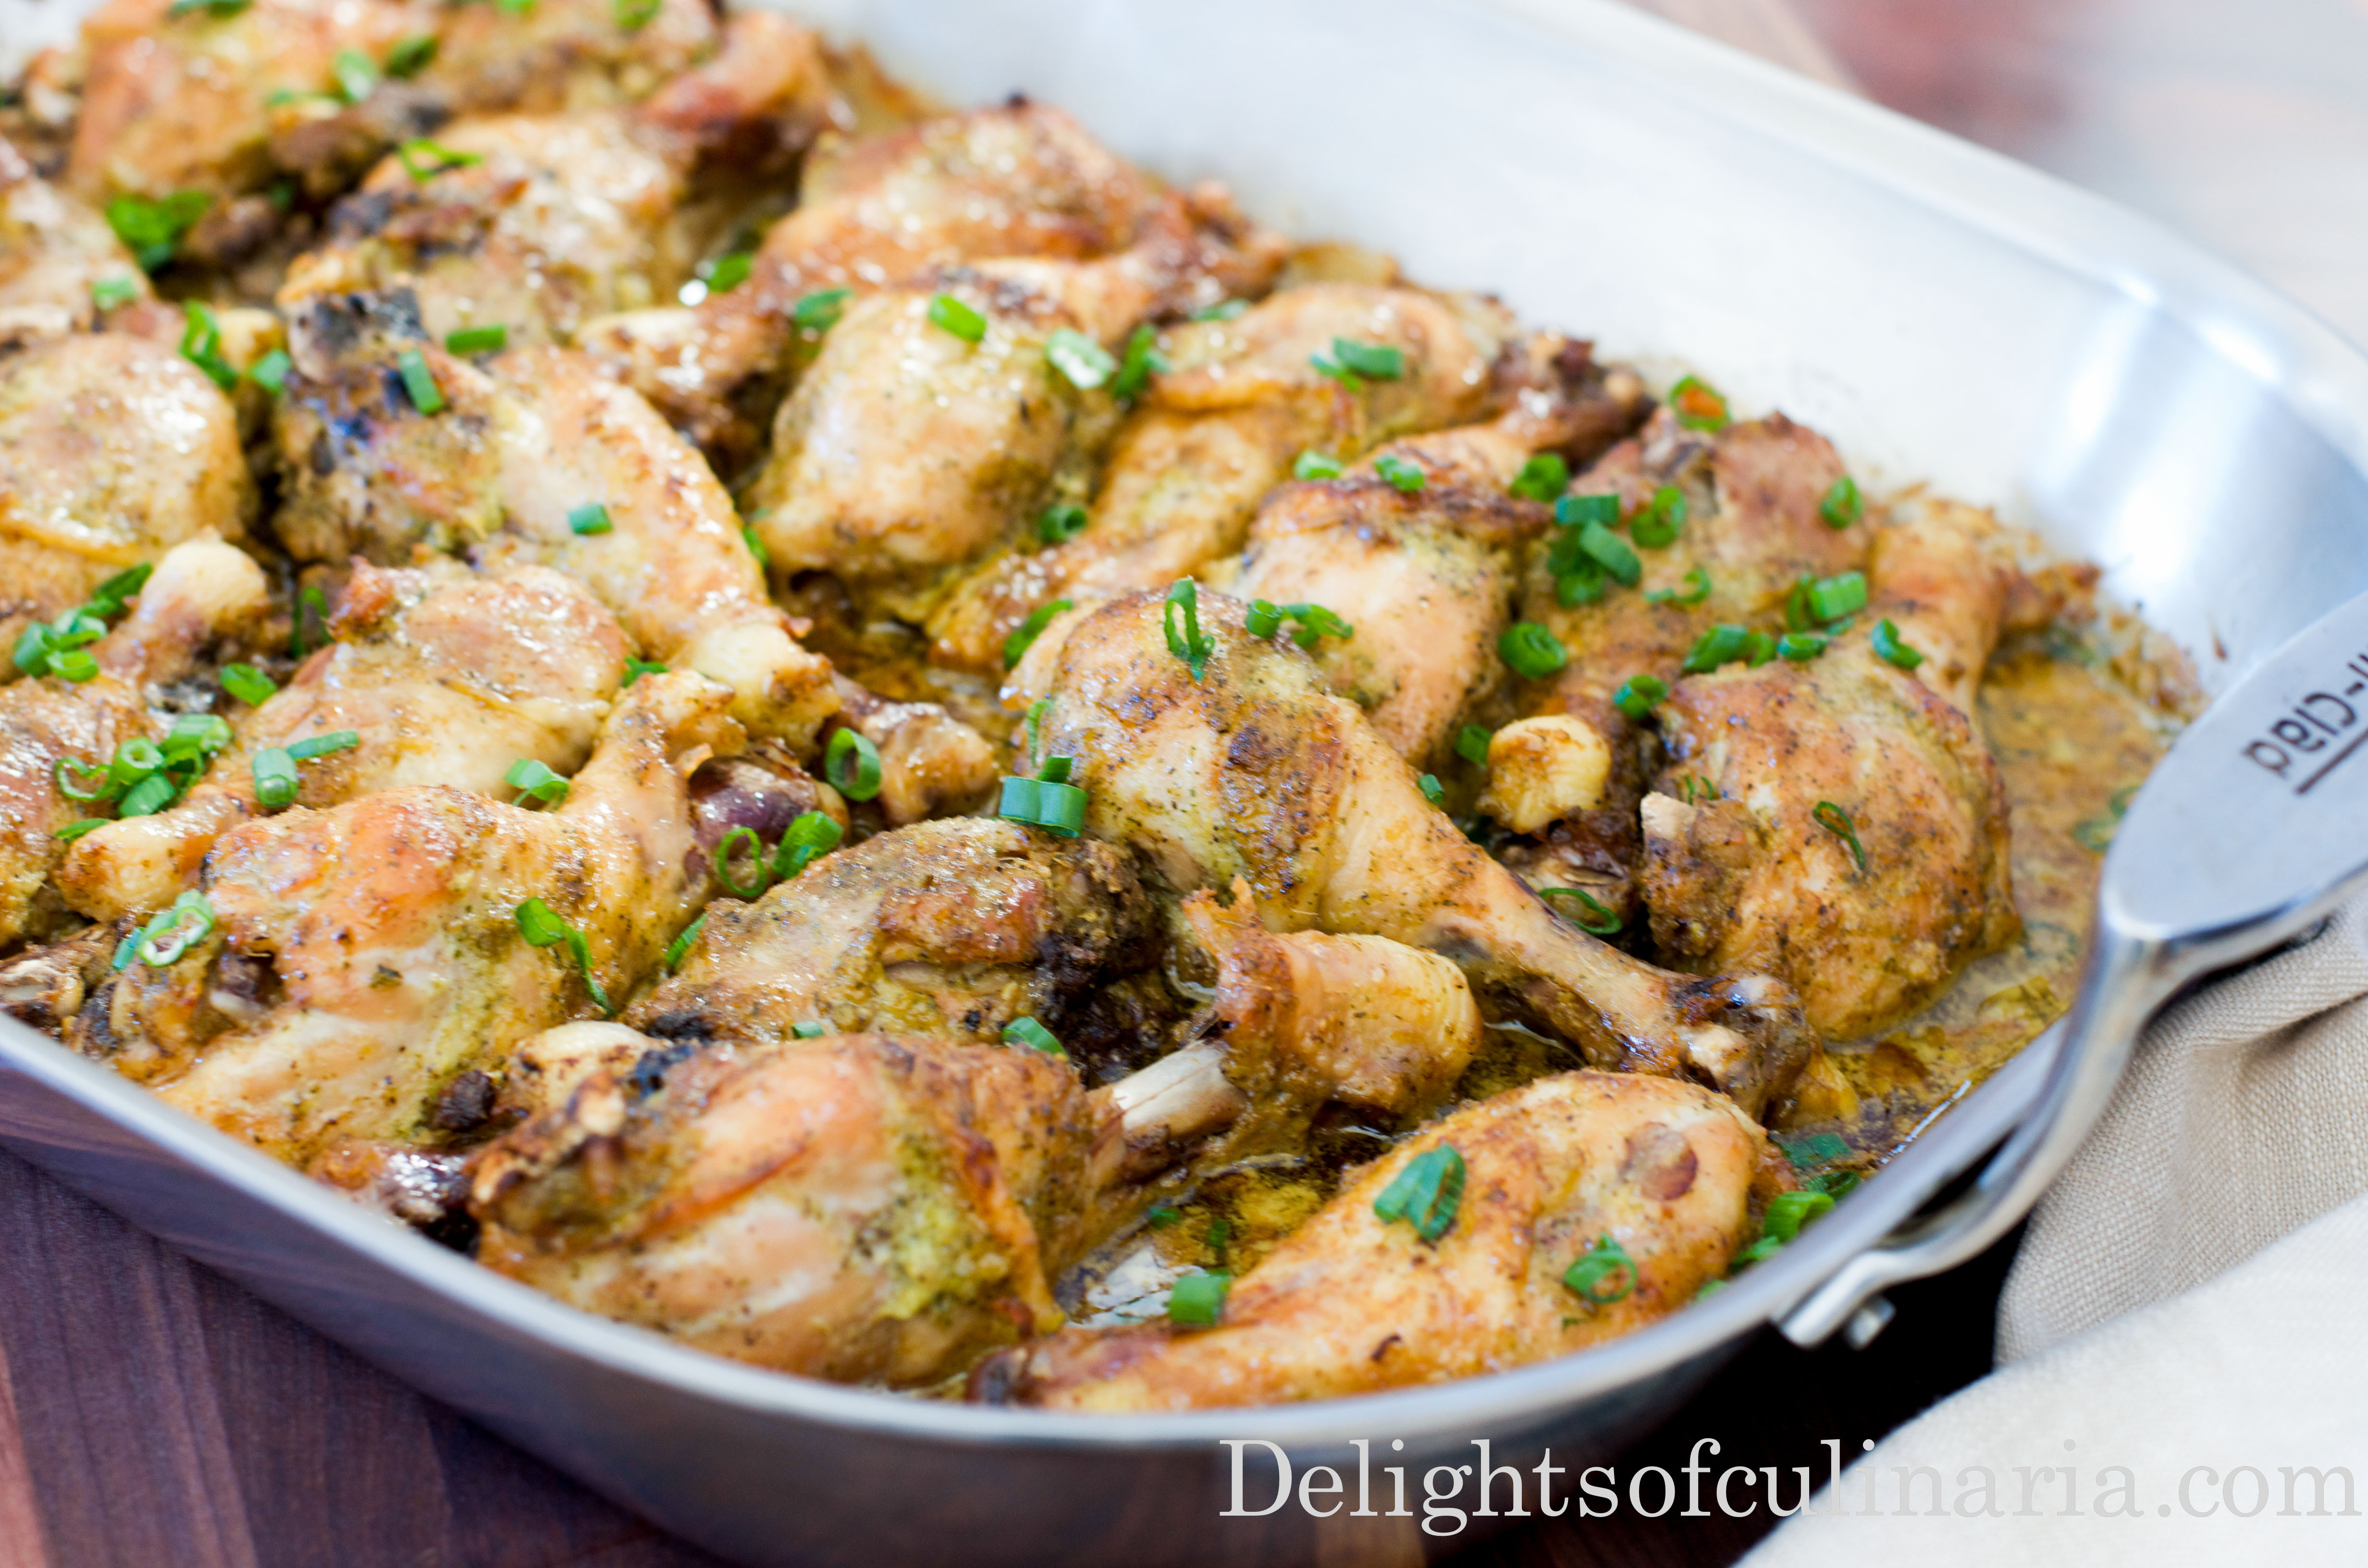 Baked Chicken Drumstick Recipes  Baked Chicken Drumsticks Delights Culinaria